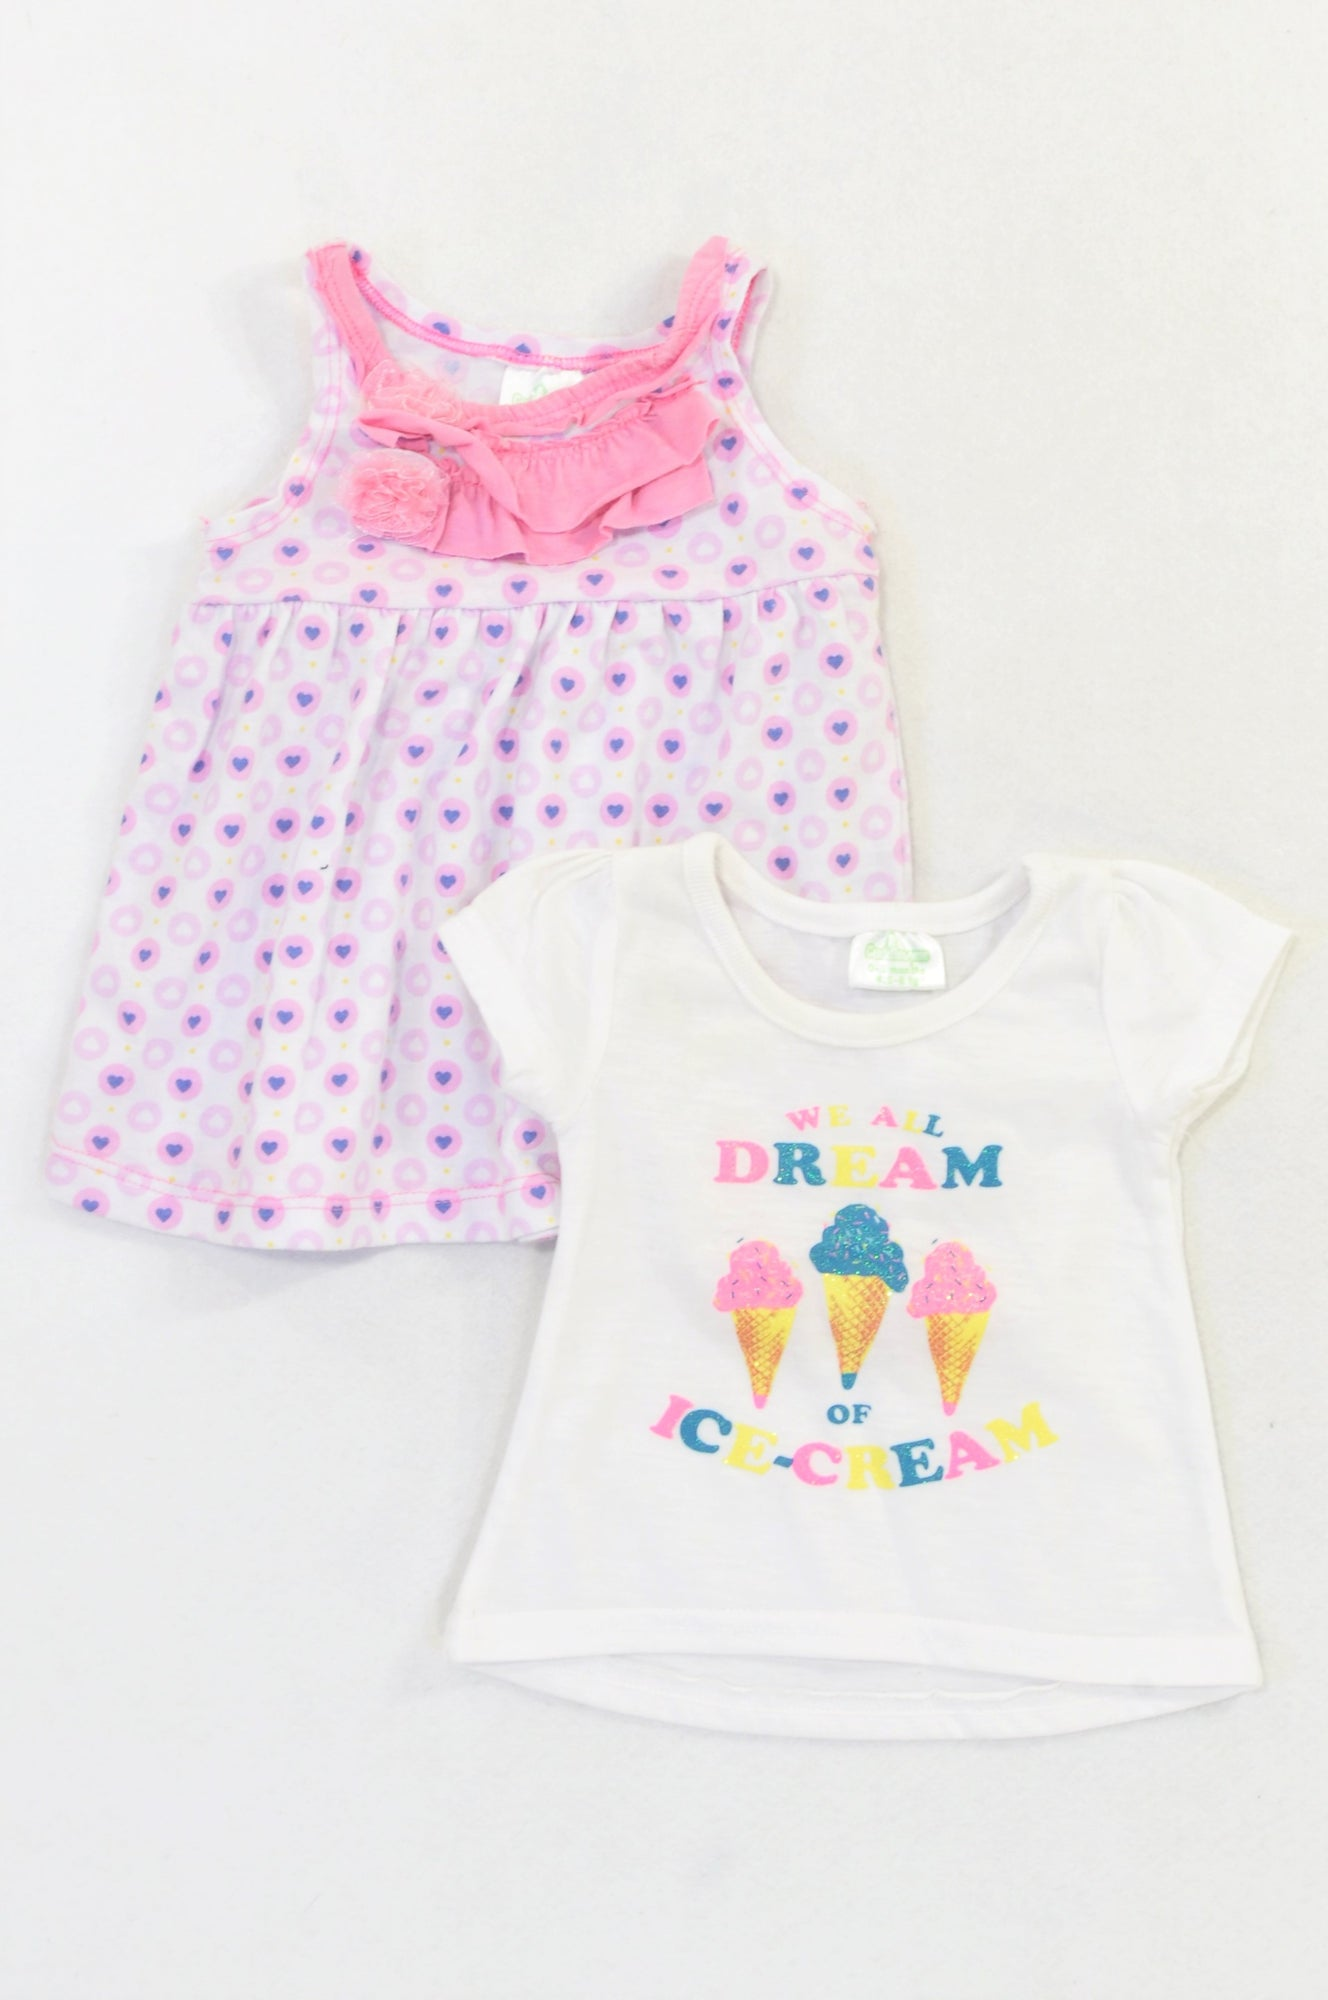 Pep 2 Pack Ice Cream T-shirt & Pink Hearts Ruffle Dress Outfit Girls 0-3 months